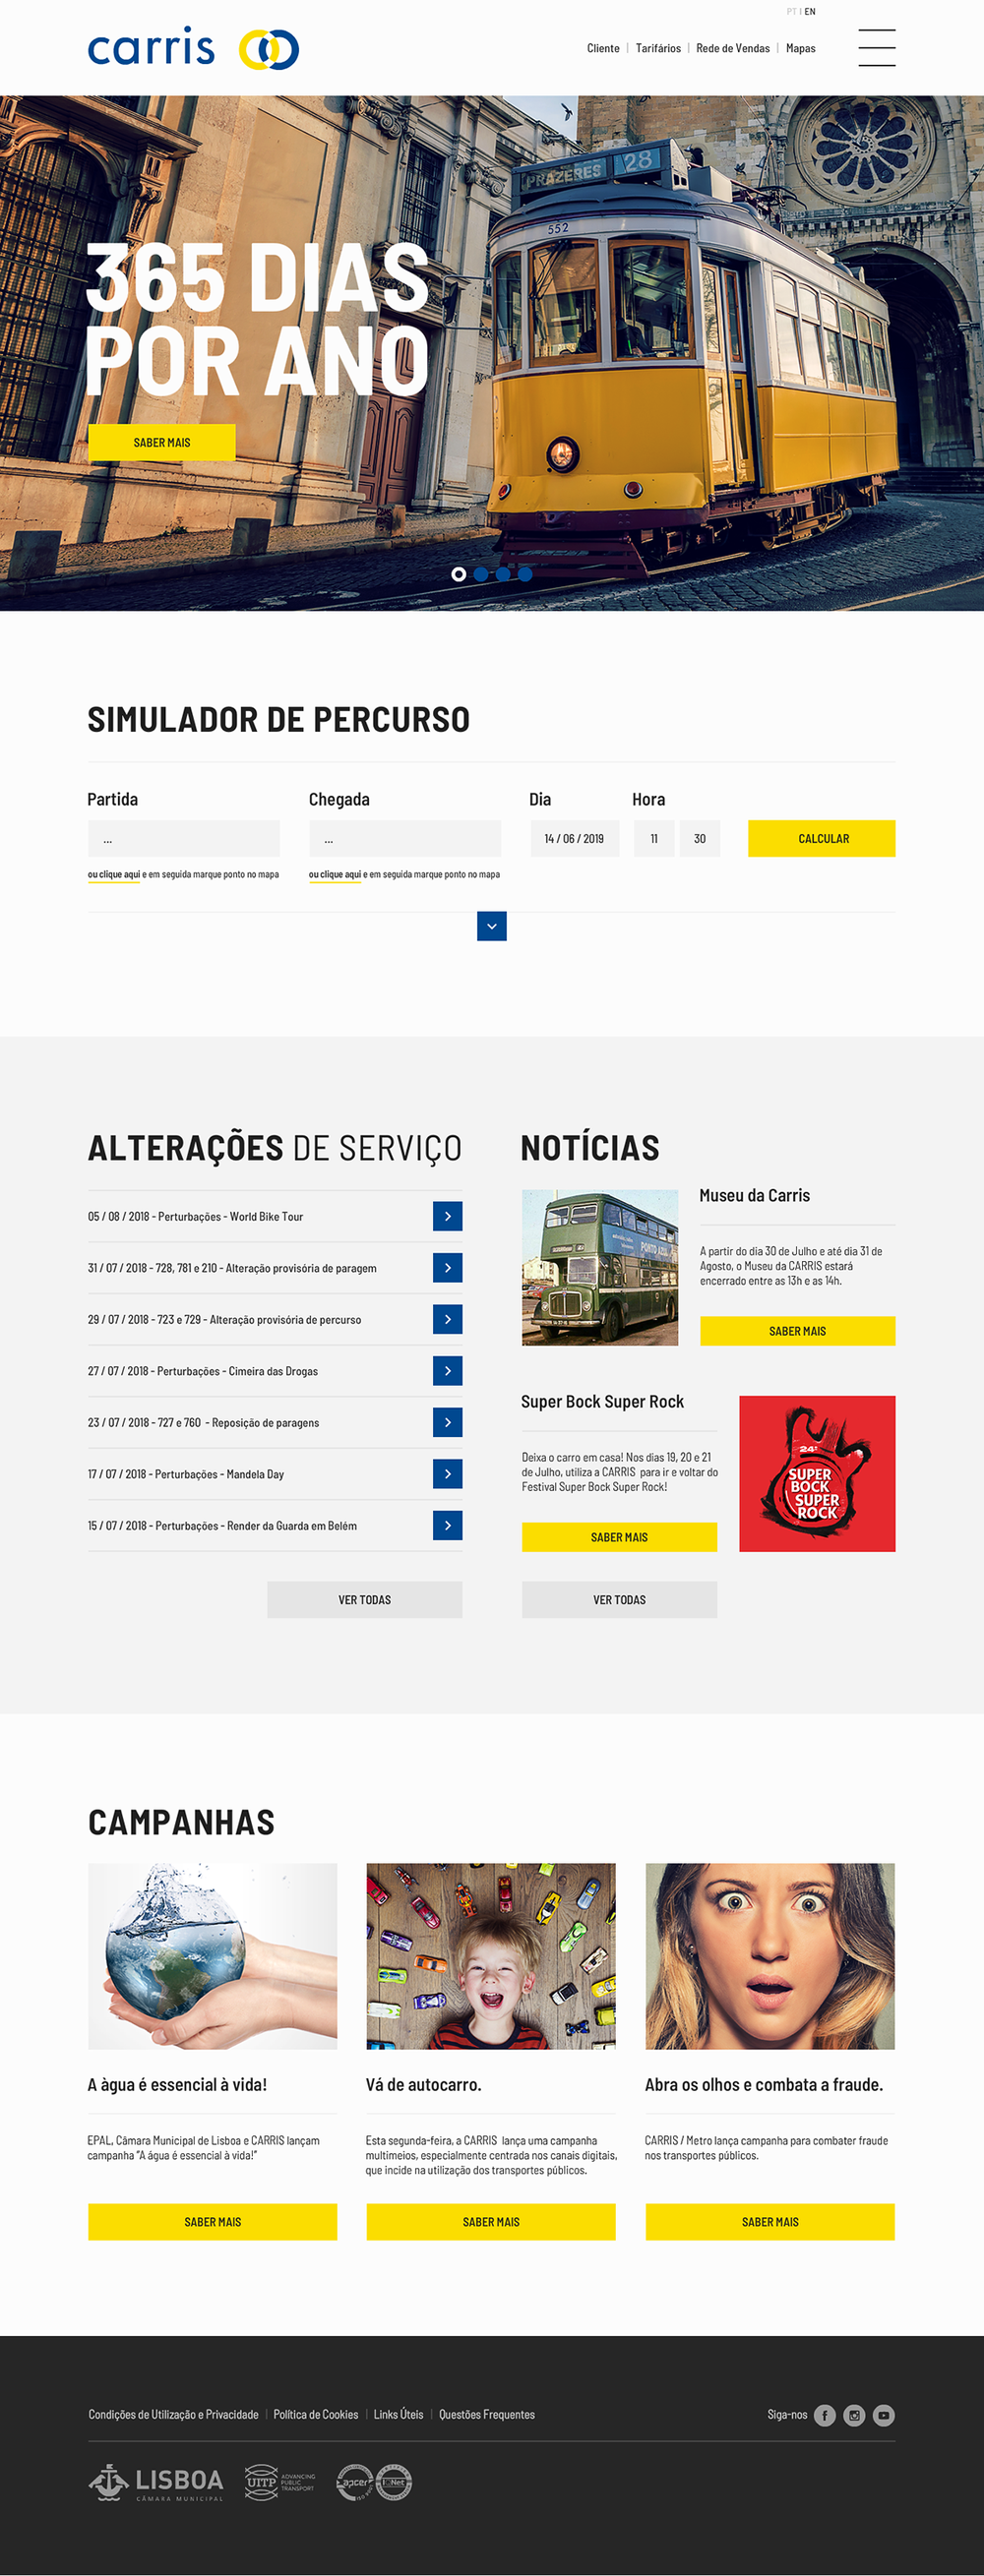 W_Web_CARRISwebsite0102HOMEPAGE.png